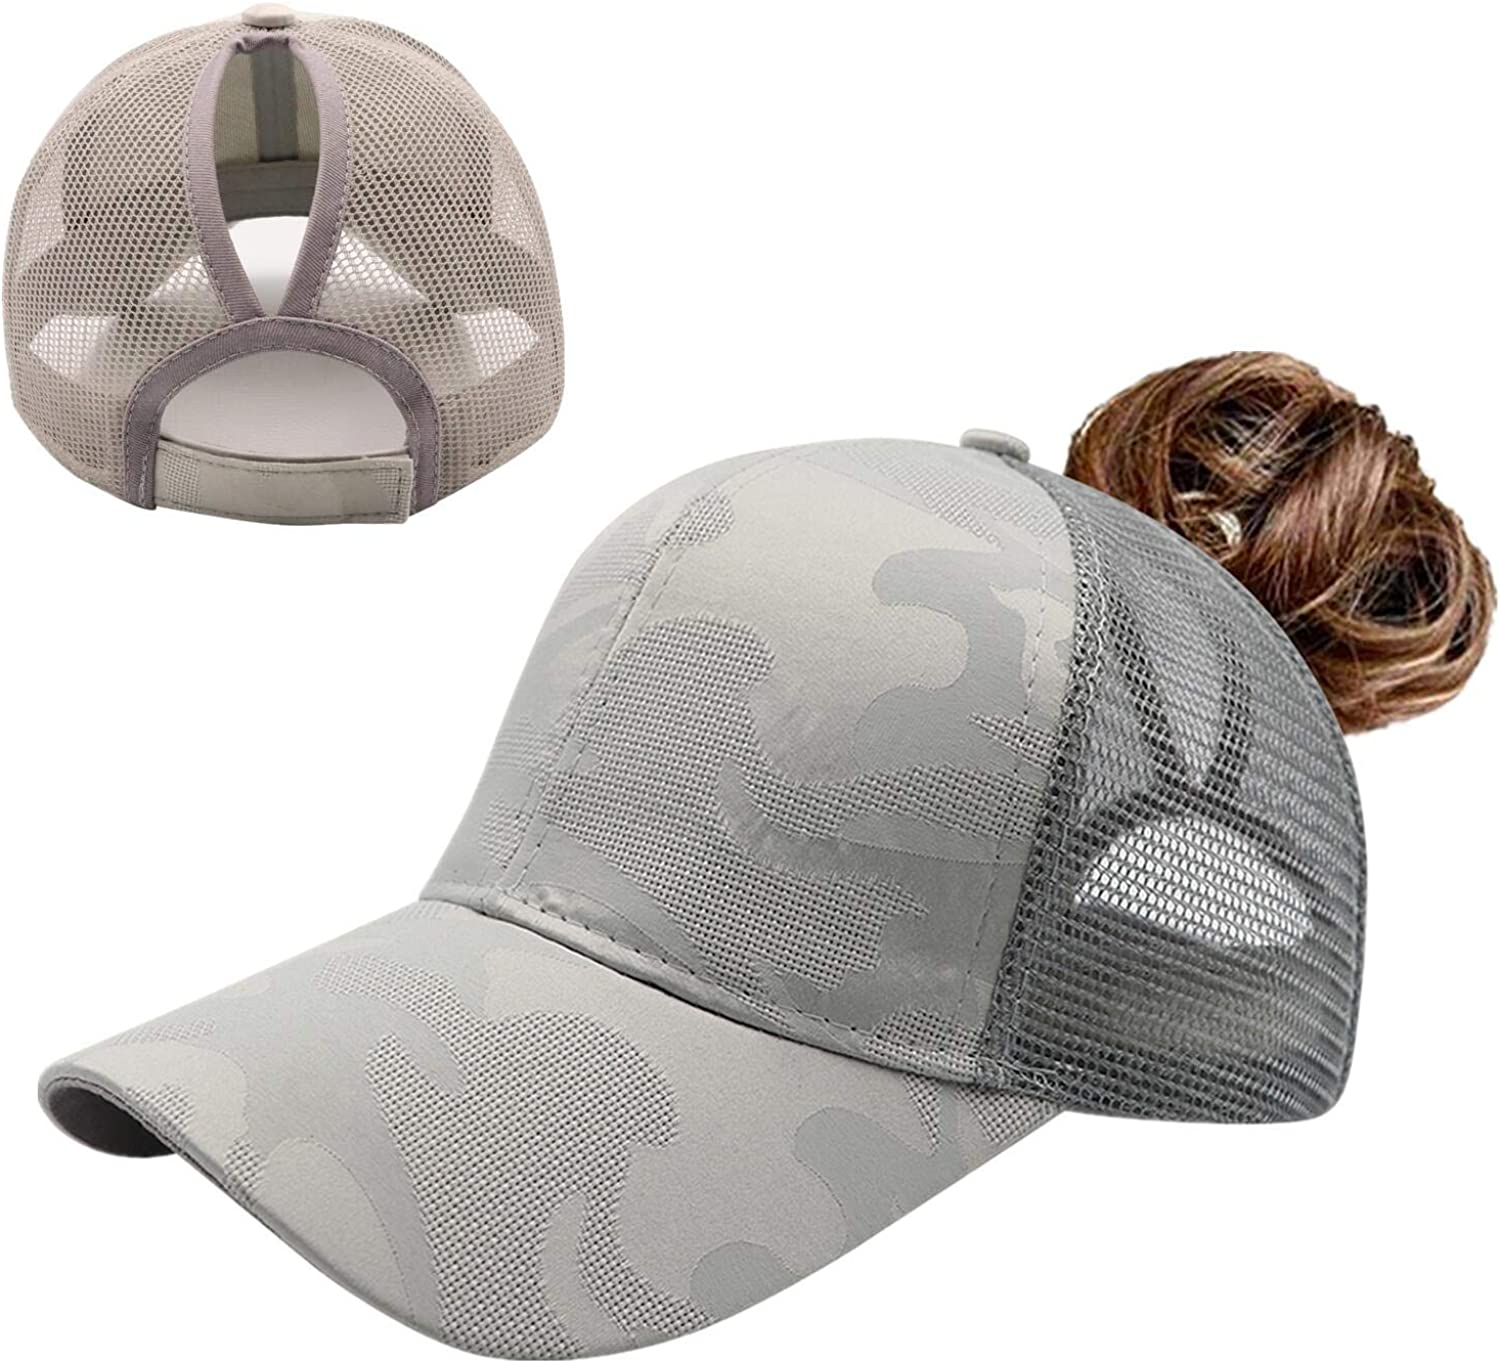 ProMindFun Womens Pony Hat High Ponytail Baseball Cap Girls Messy Bun Caps Camouflage Trucker Bad Hair Day Adjustable Dad Hat